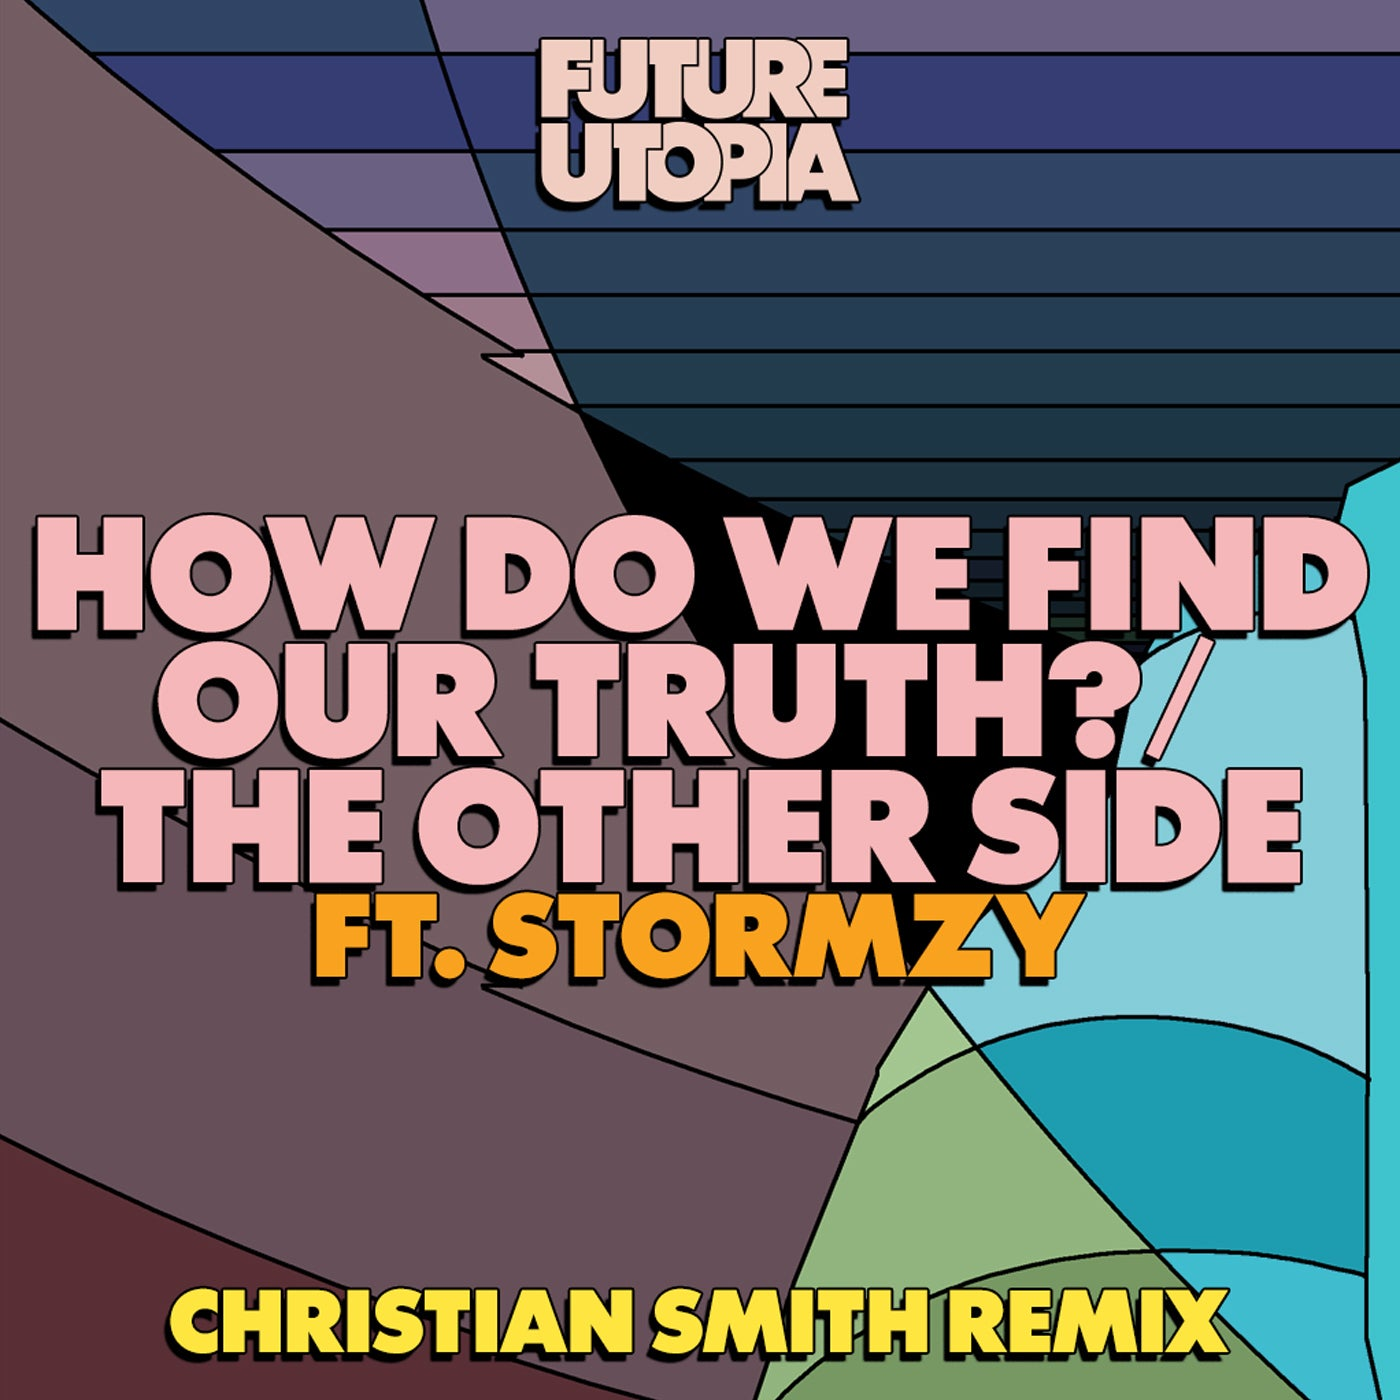 How Do We Find Our Truth? (Christian Smith Remix) feat. Stormzy (Original Mix)